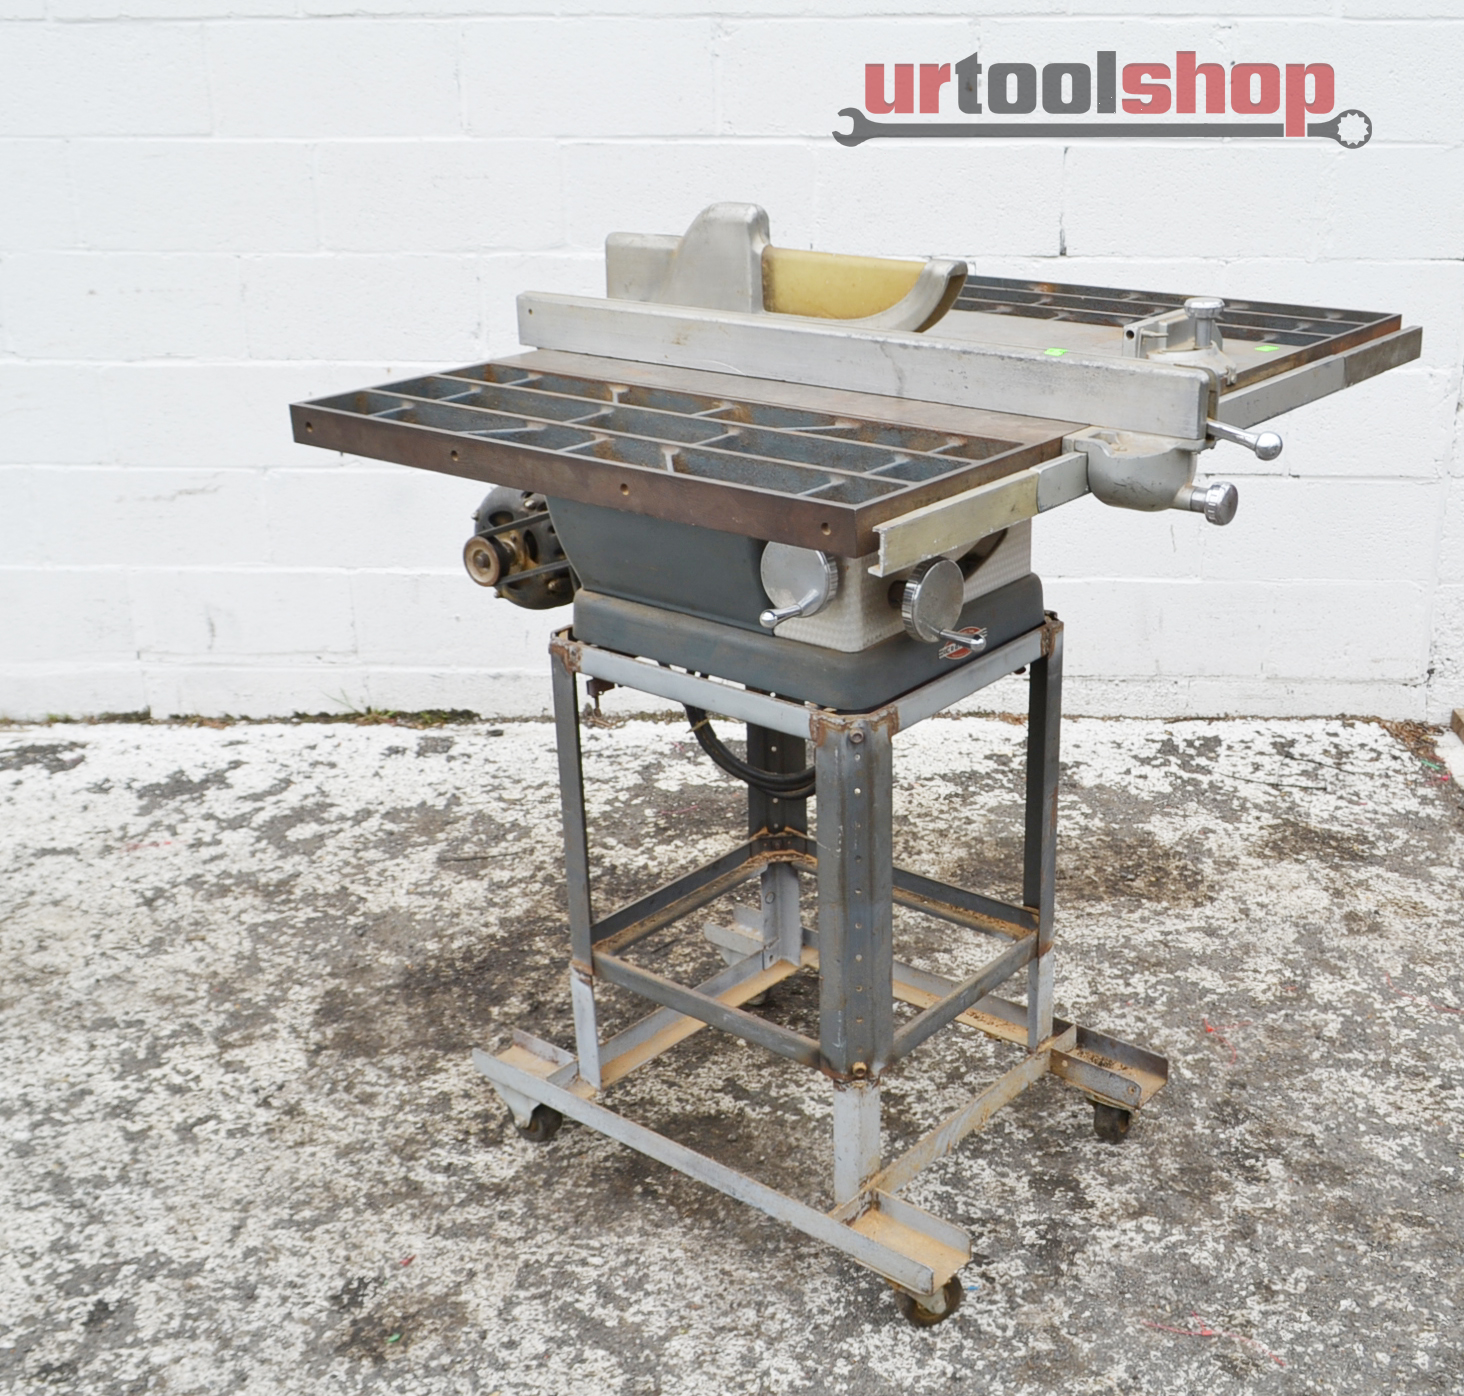 Craftsman 113 27520 10 Table Saw 6921 2 Ebay